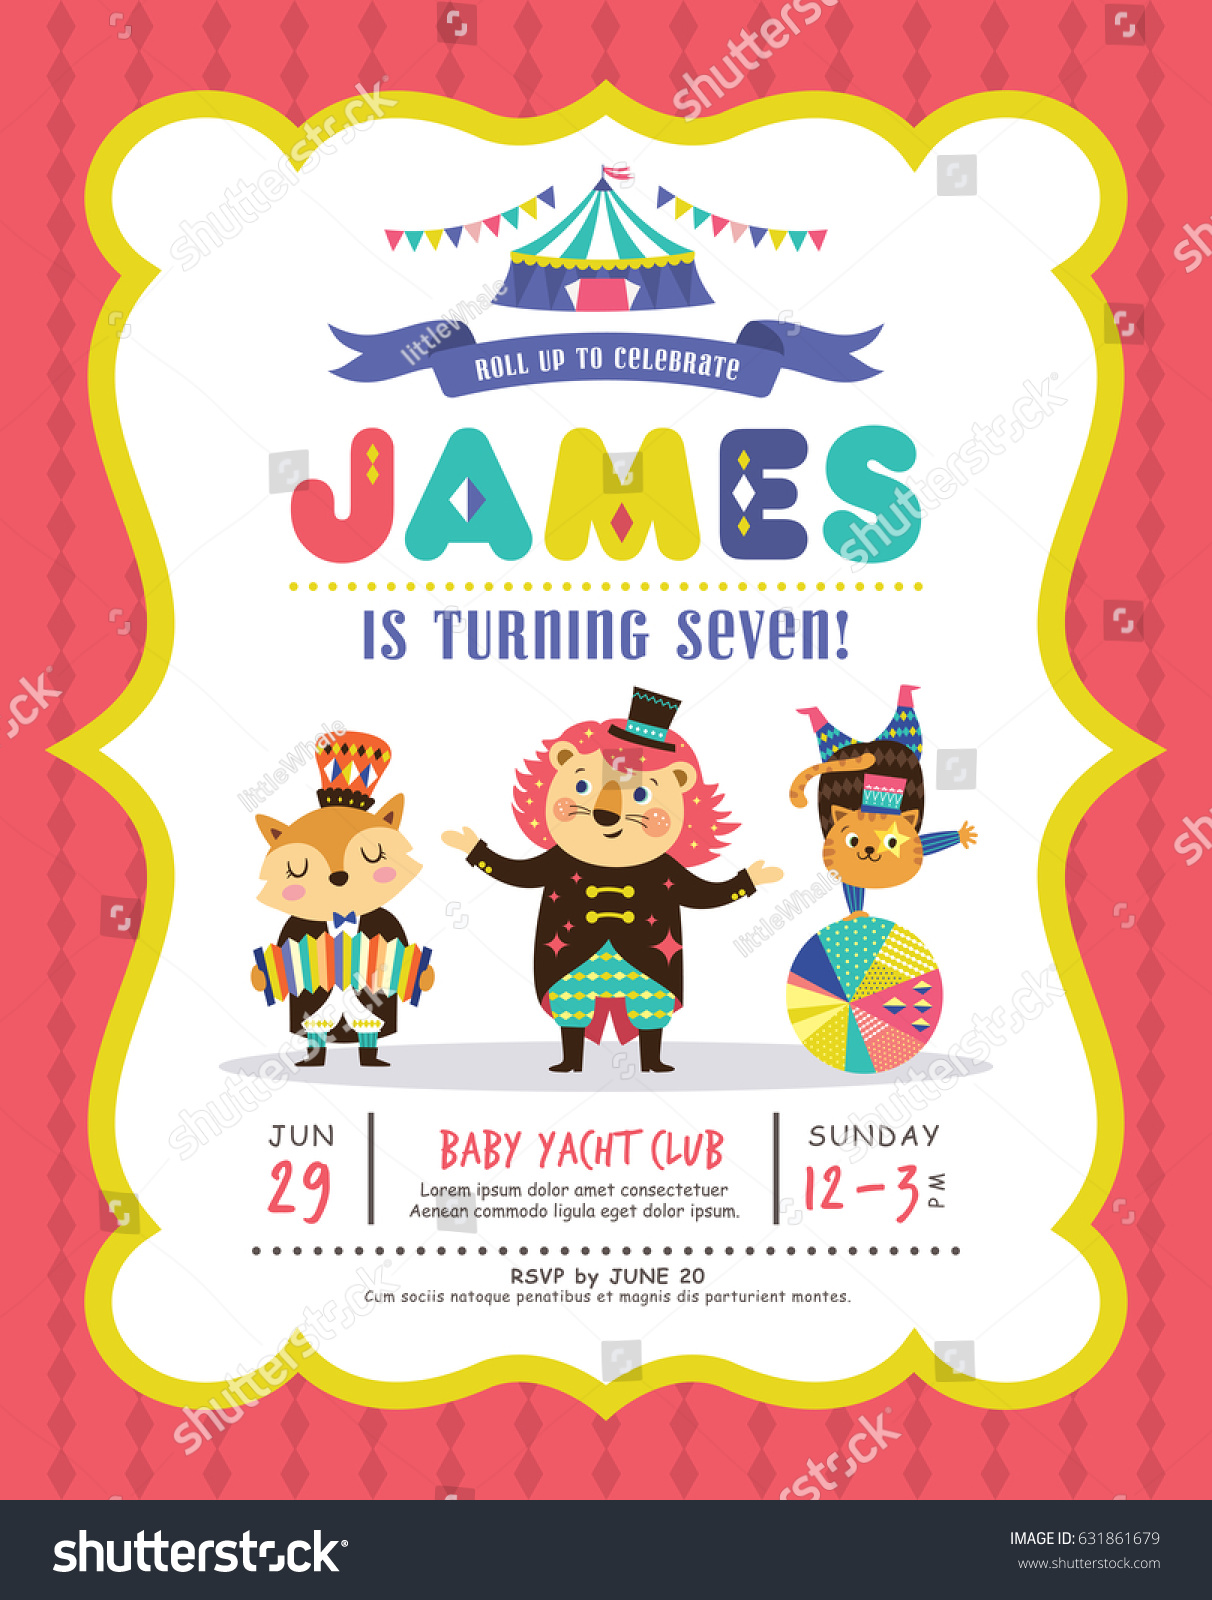 Kids birthday party invitation card circus stock vector 631861679 kids birthday party invitation card with circus theme stopboris Gallery